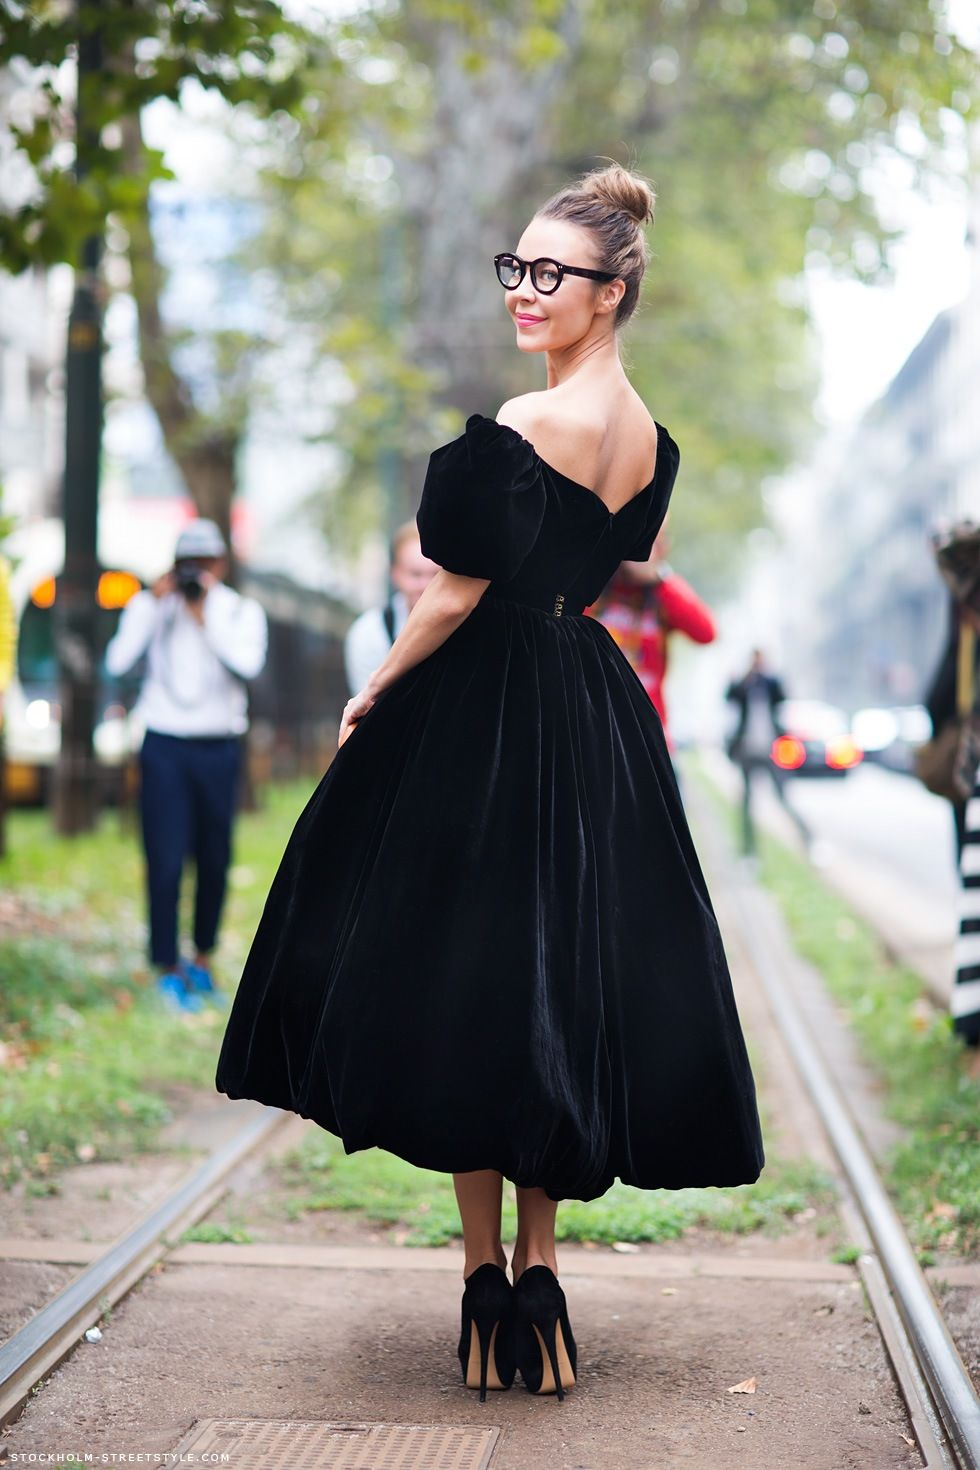 Pin by Анастасия Чвала on ulyana pinterest glass street and